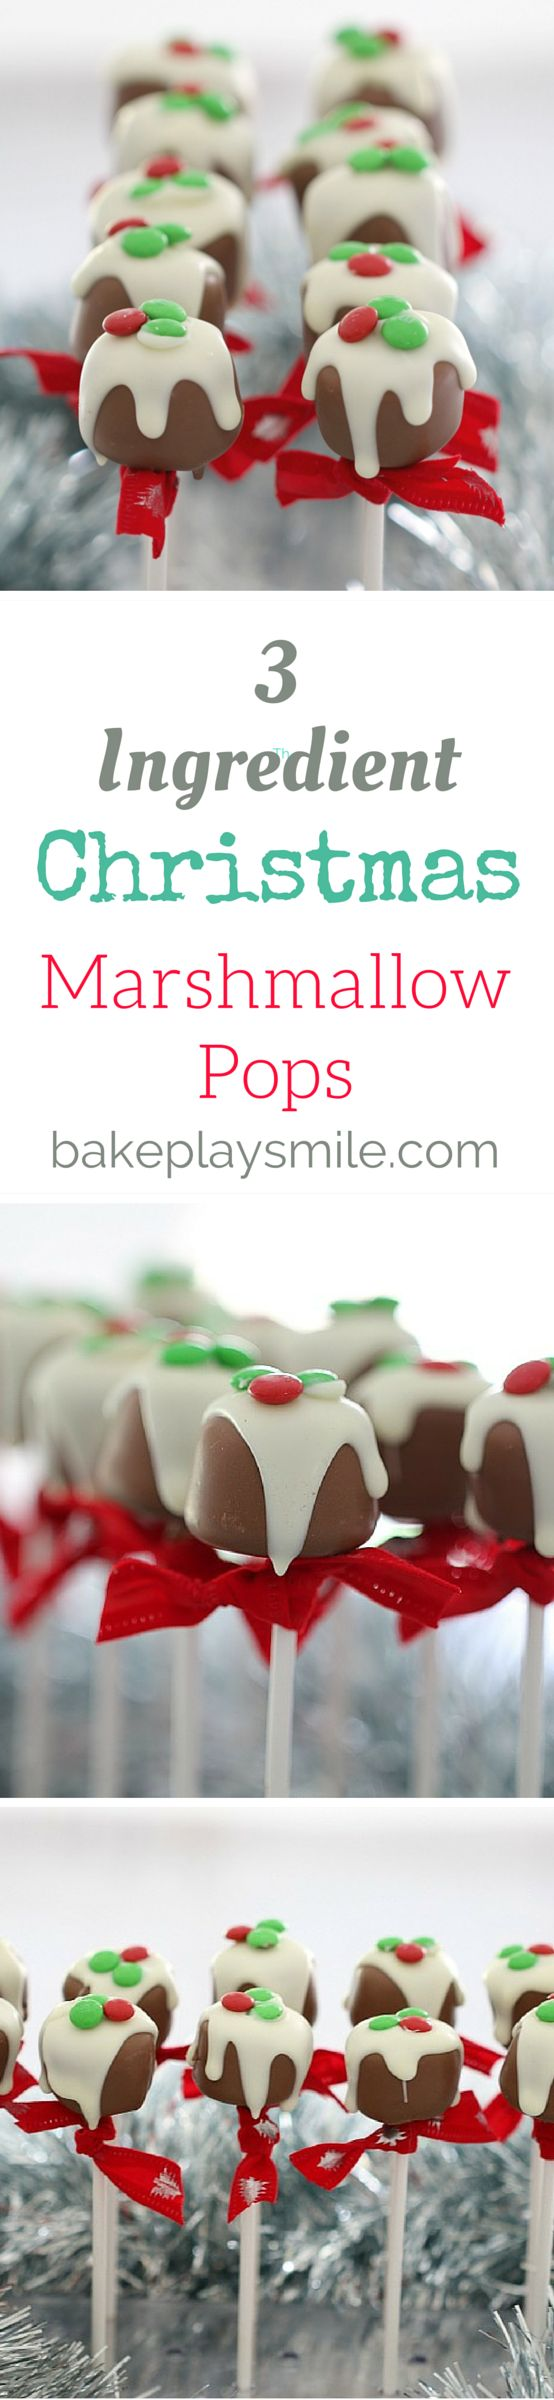 These 3 Ingredient Christmas Marshmallow Pops are the perfect way to get kids in the kitchen! They're quick, easy and great for end of year class parties! #Christmas #party #food #kids #easy #recipe #nobake #marshmallow #pops